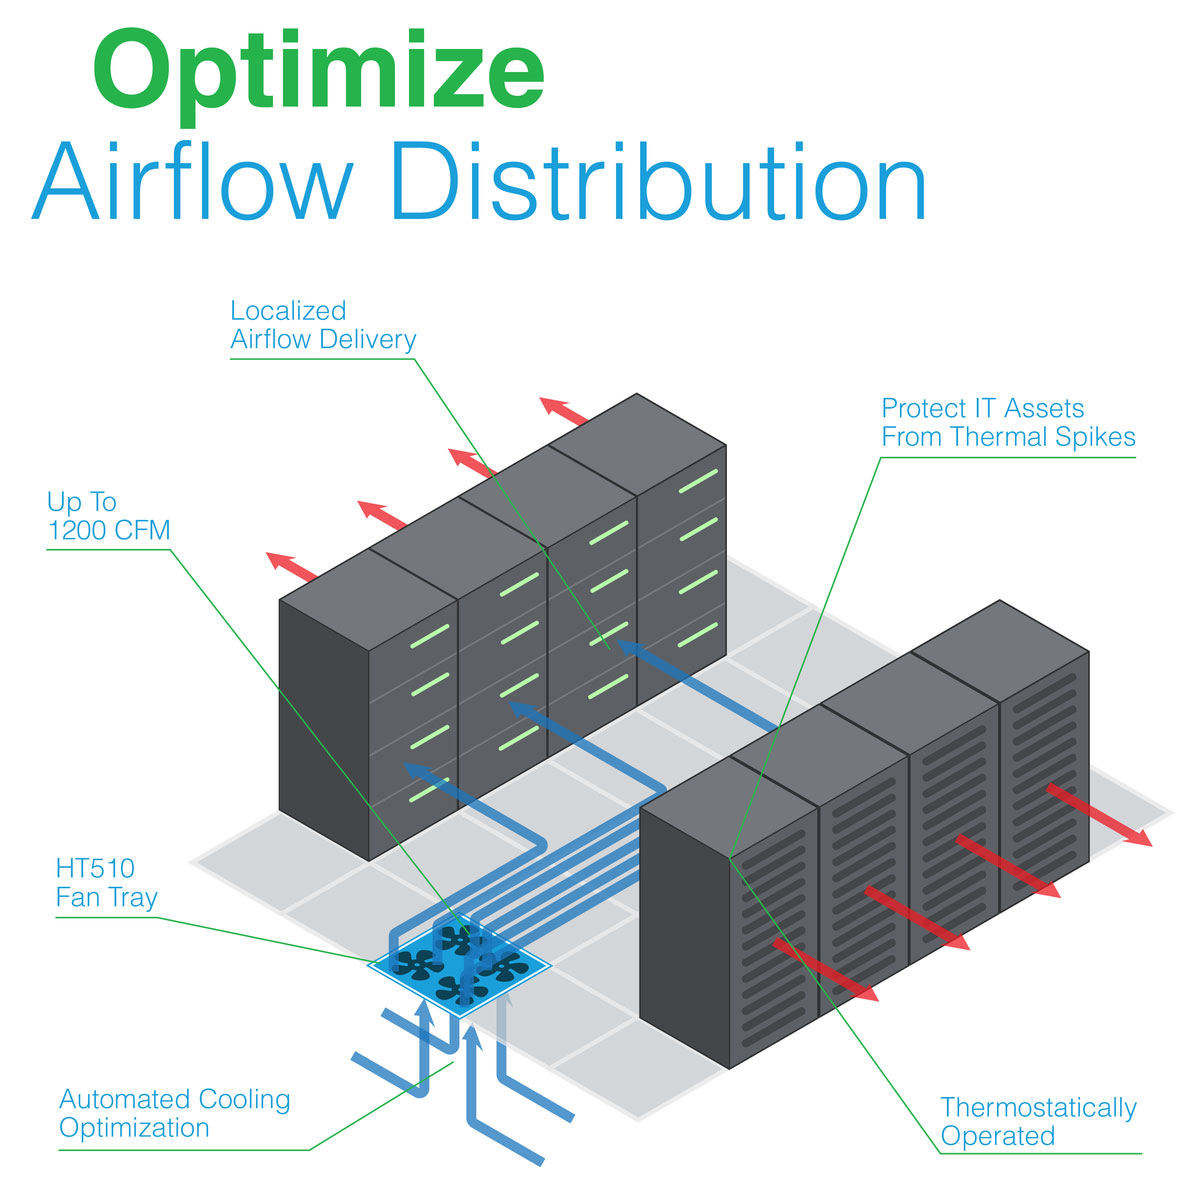 hotspotr infographic for optimizing airflow distribution